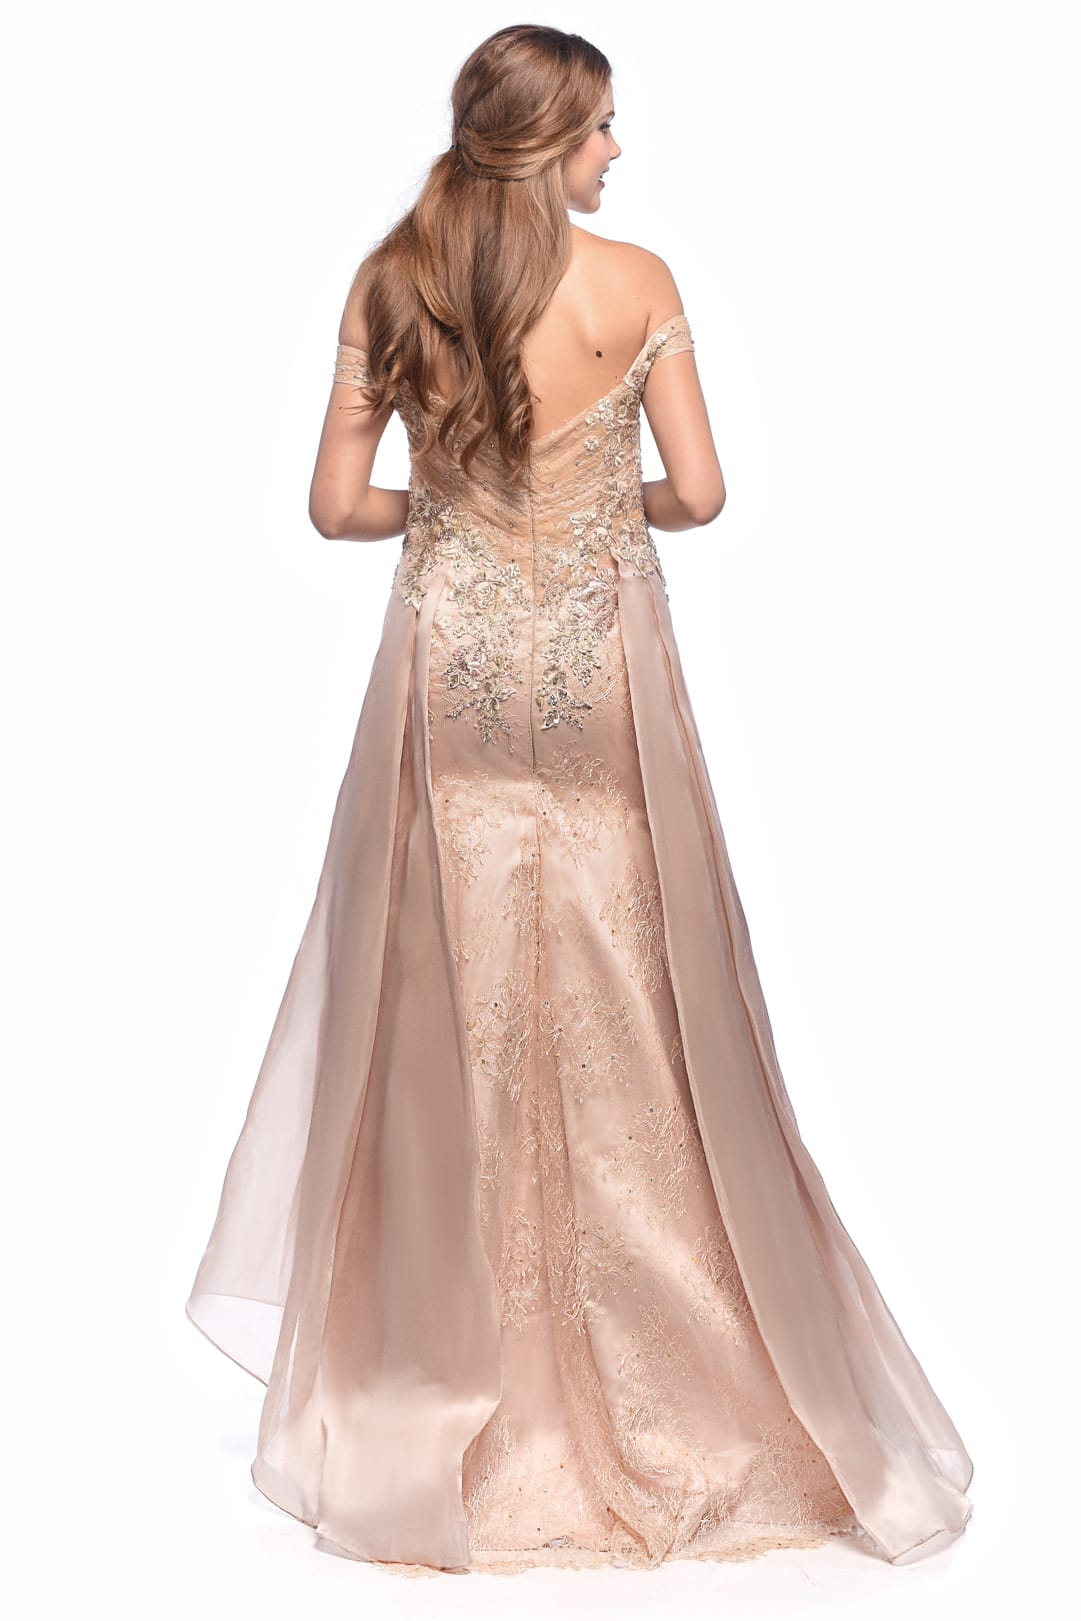 Bare Gold Gown